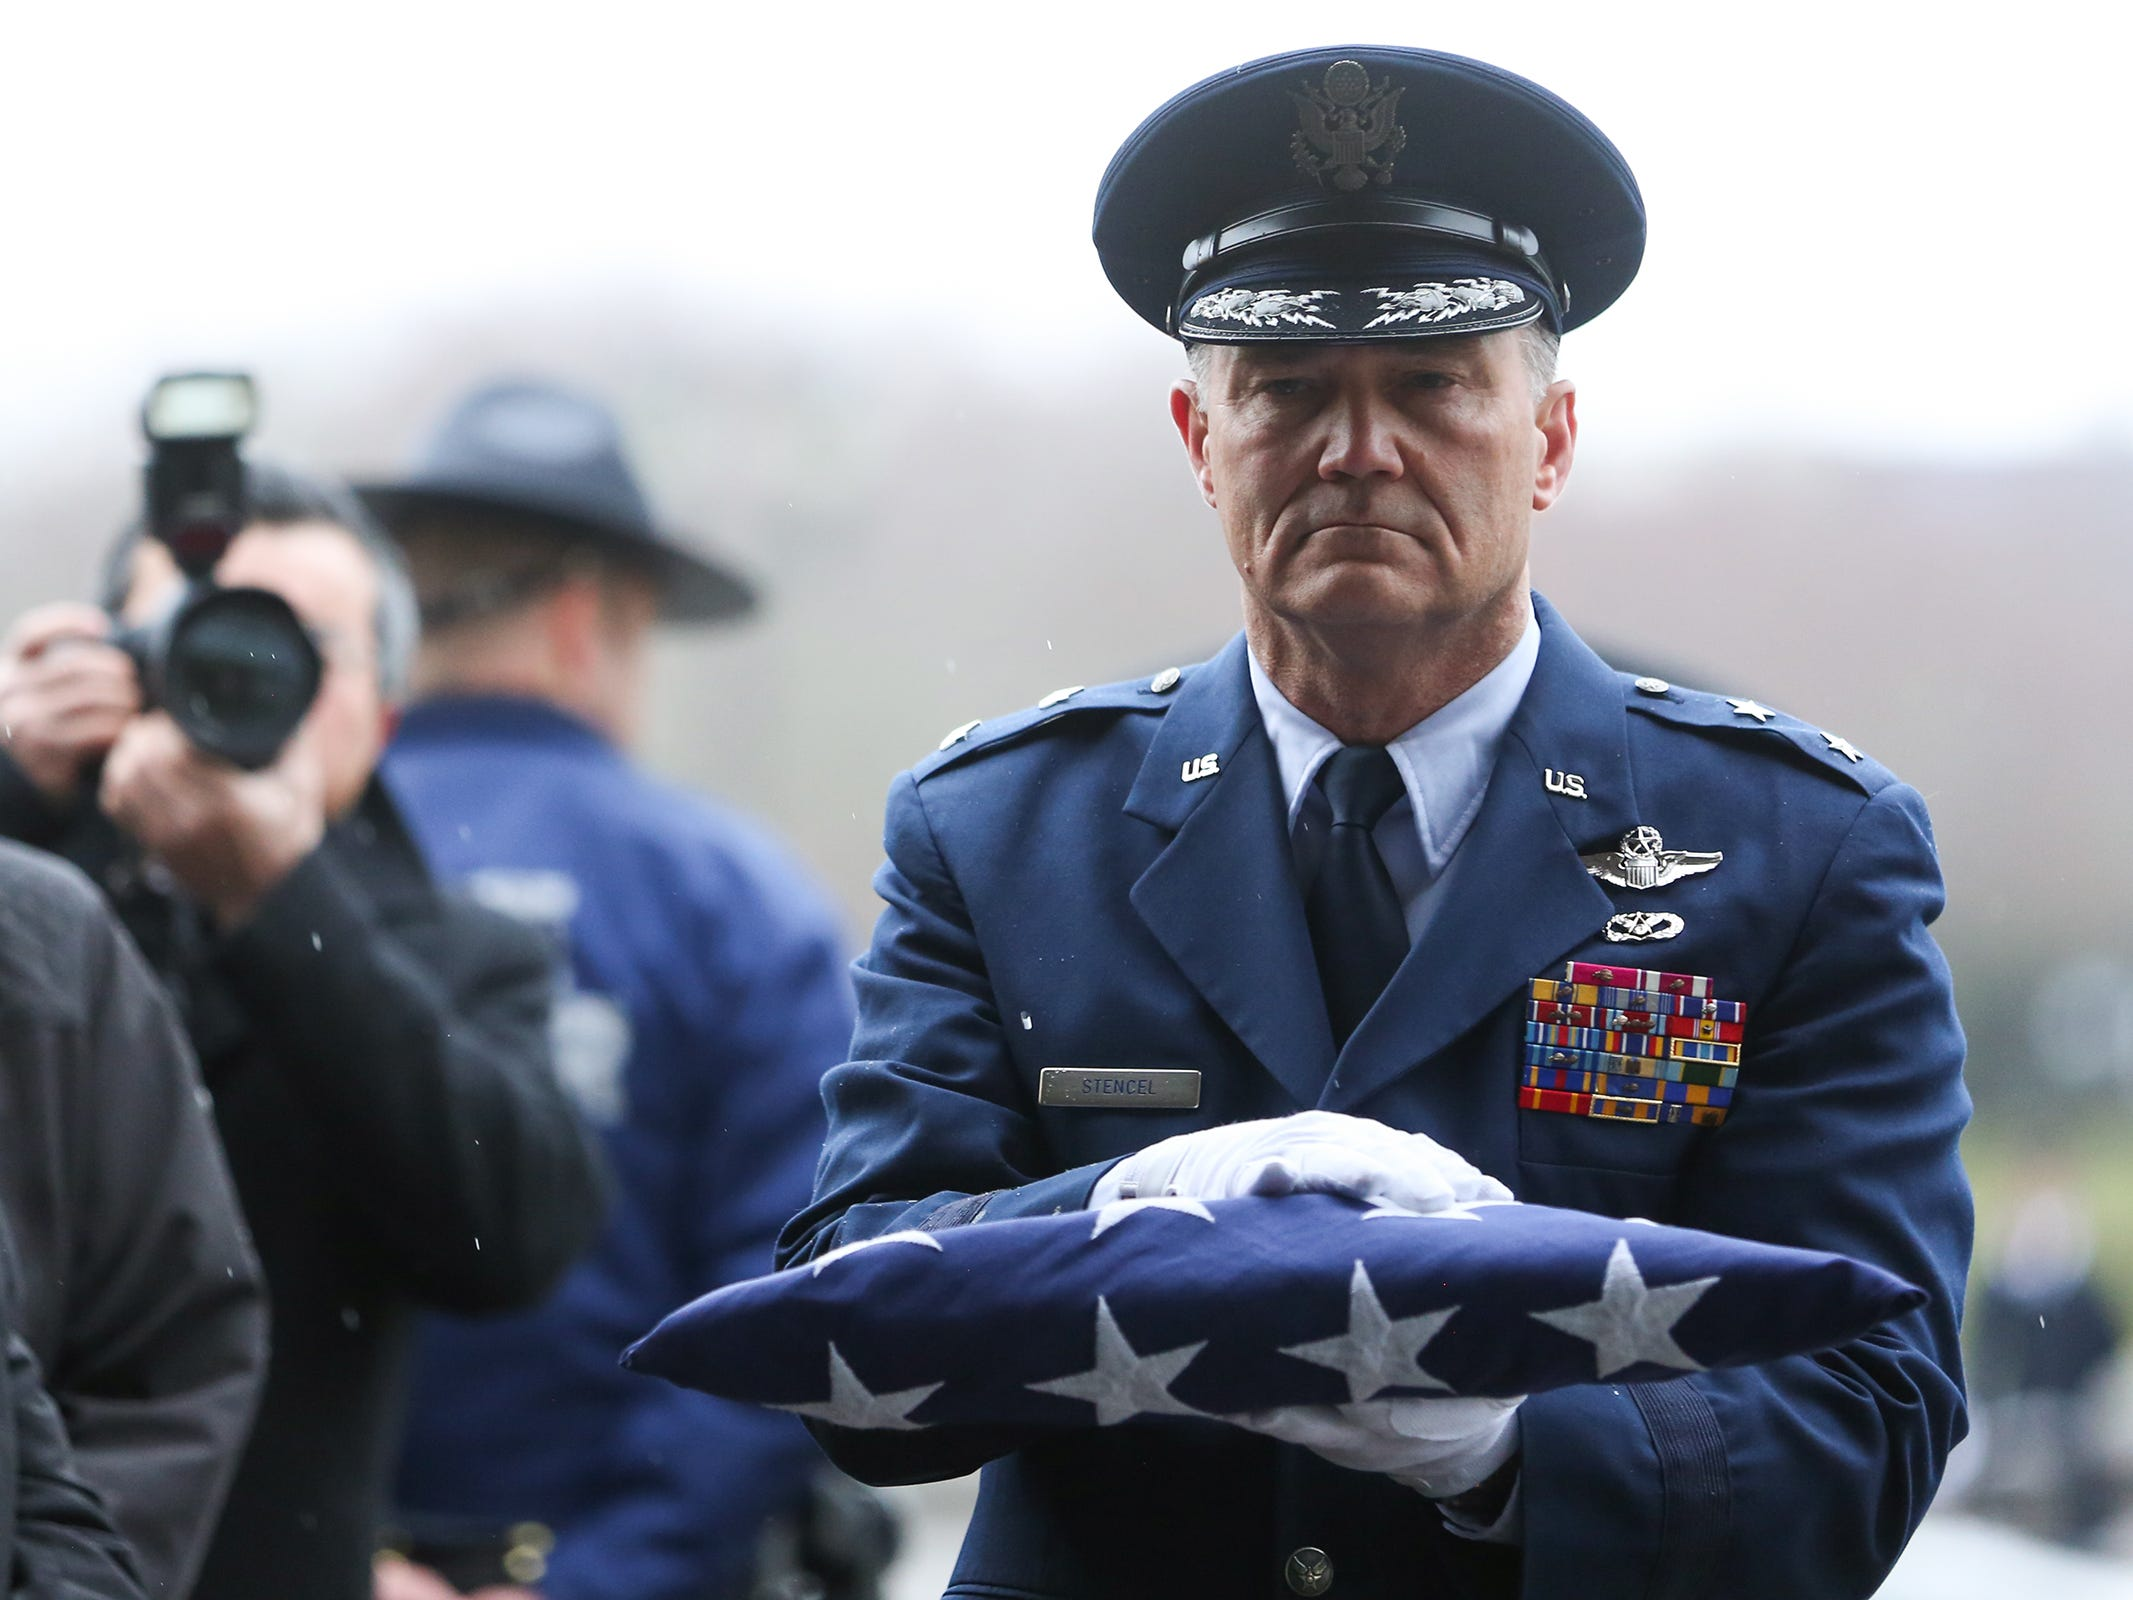 The ceremonial flag folding during the state funeral for Secretary of State Dennis Richardson at the Oregon State Capitol in Salem on Wednesday, March 6, 2019.